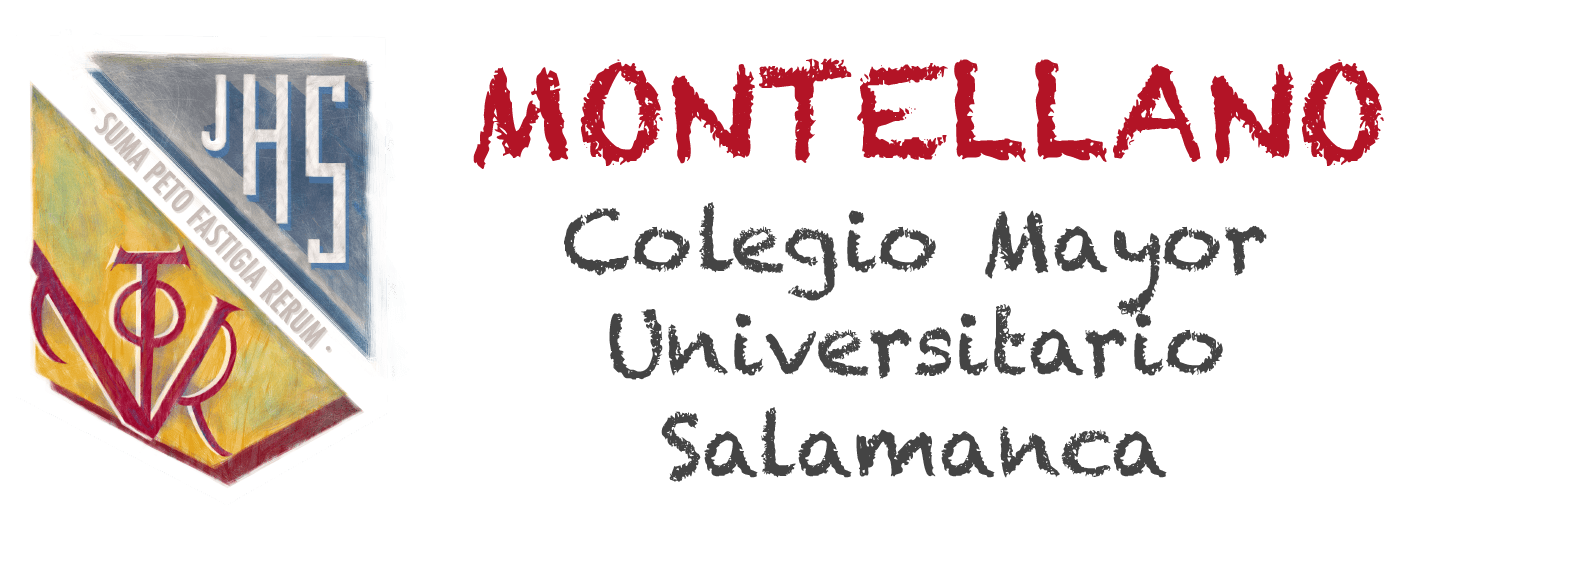 Colegio Mayor Montellano